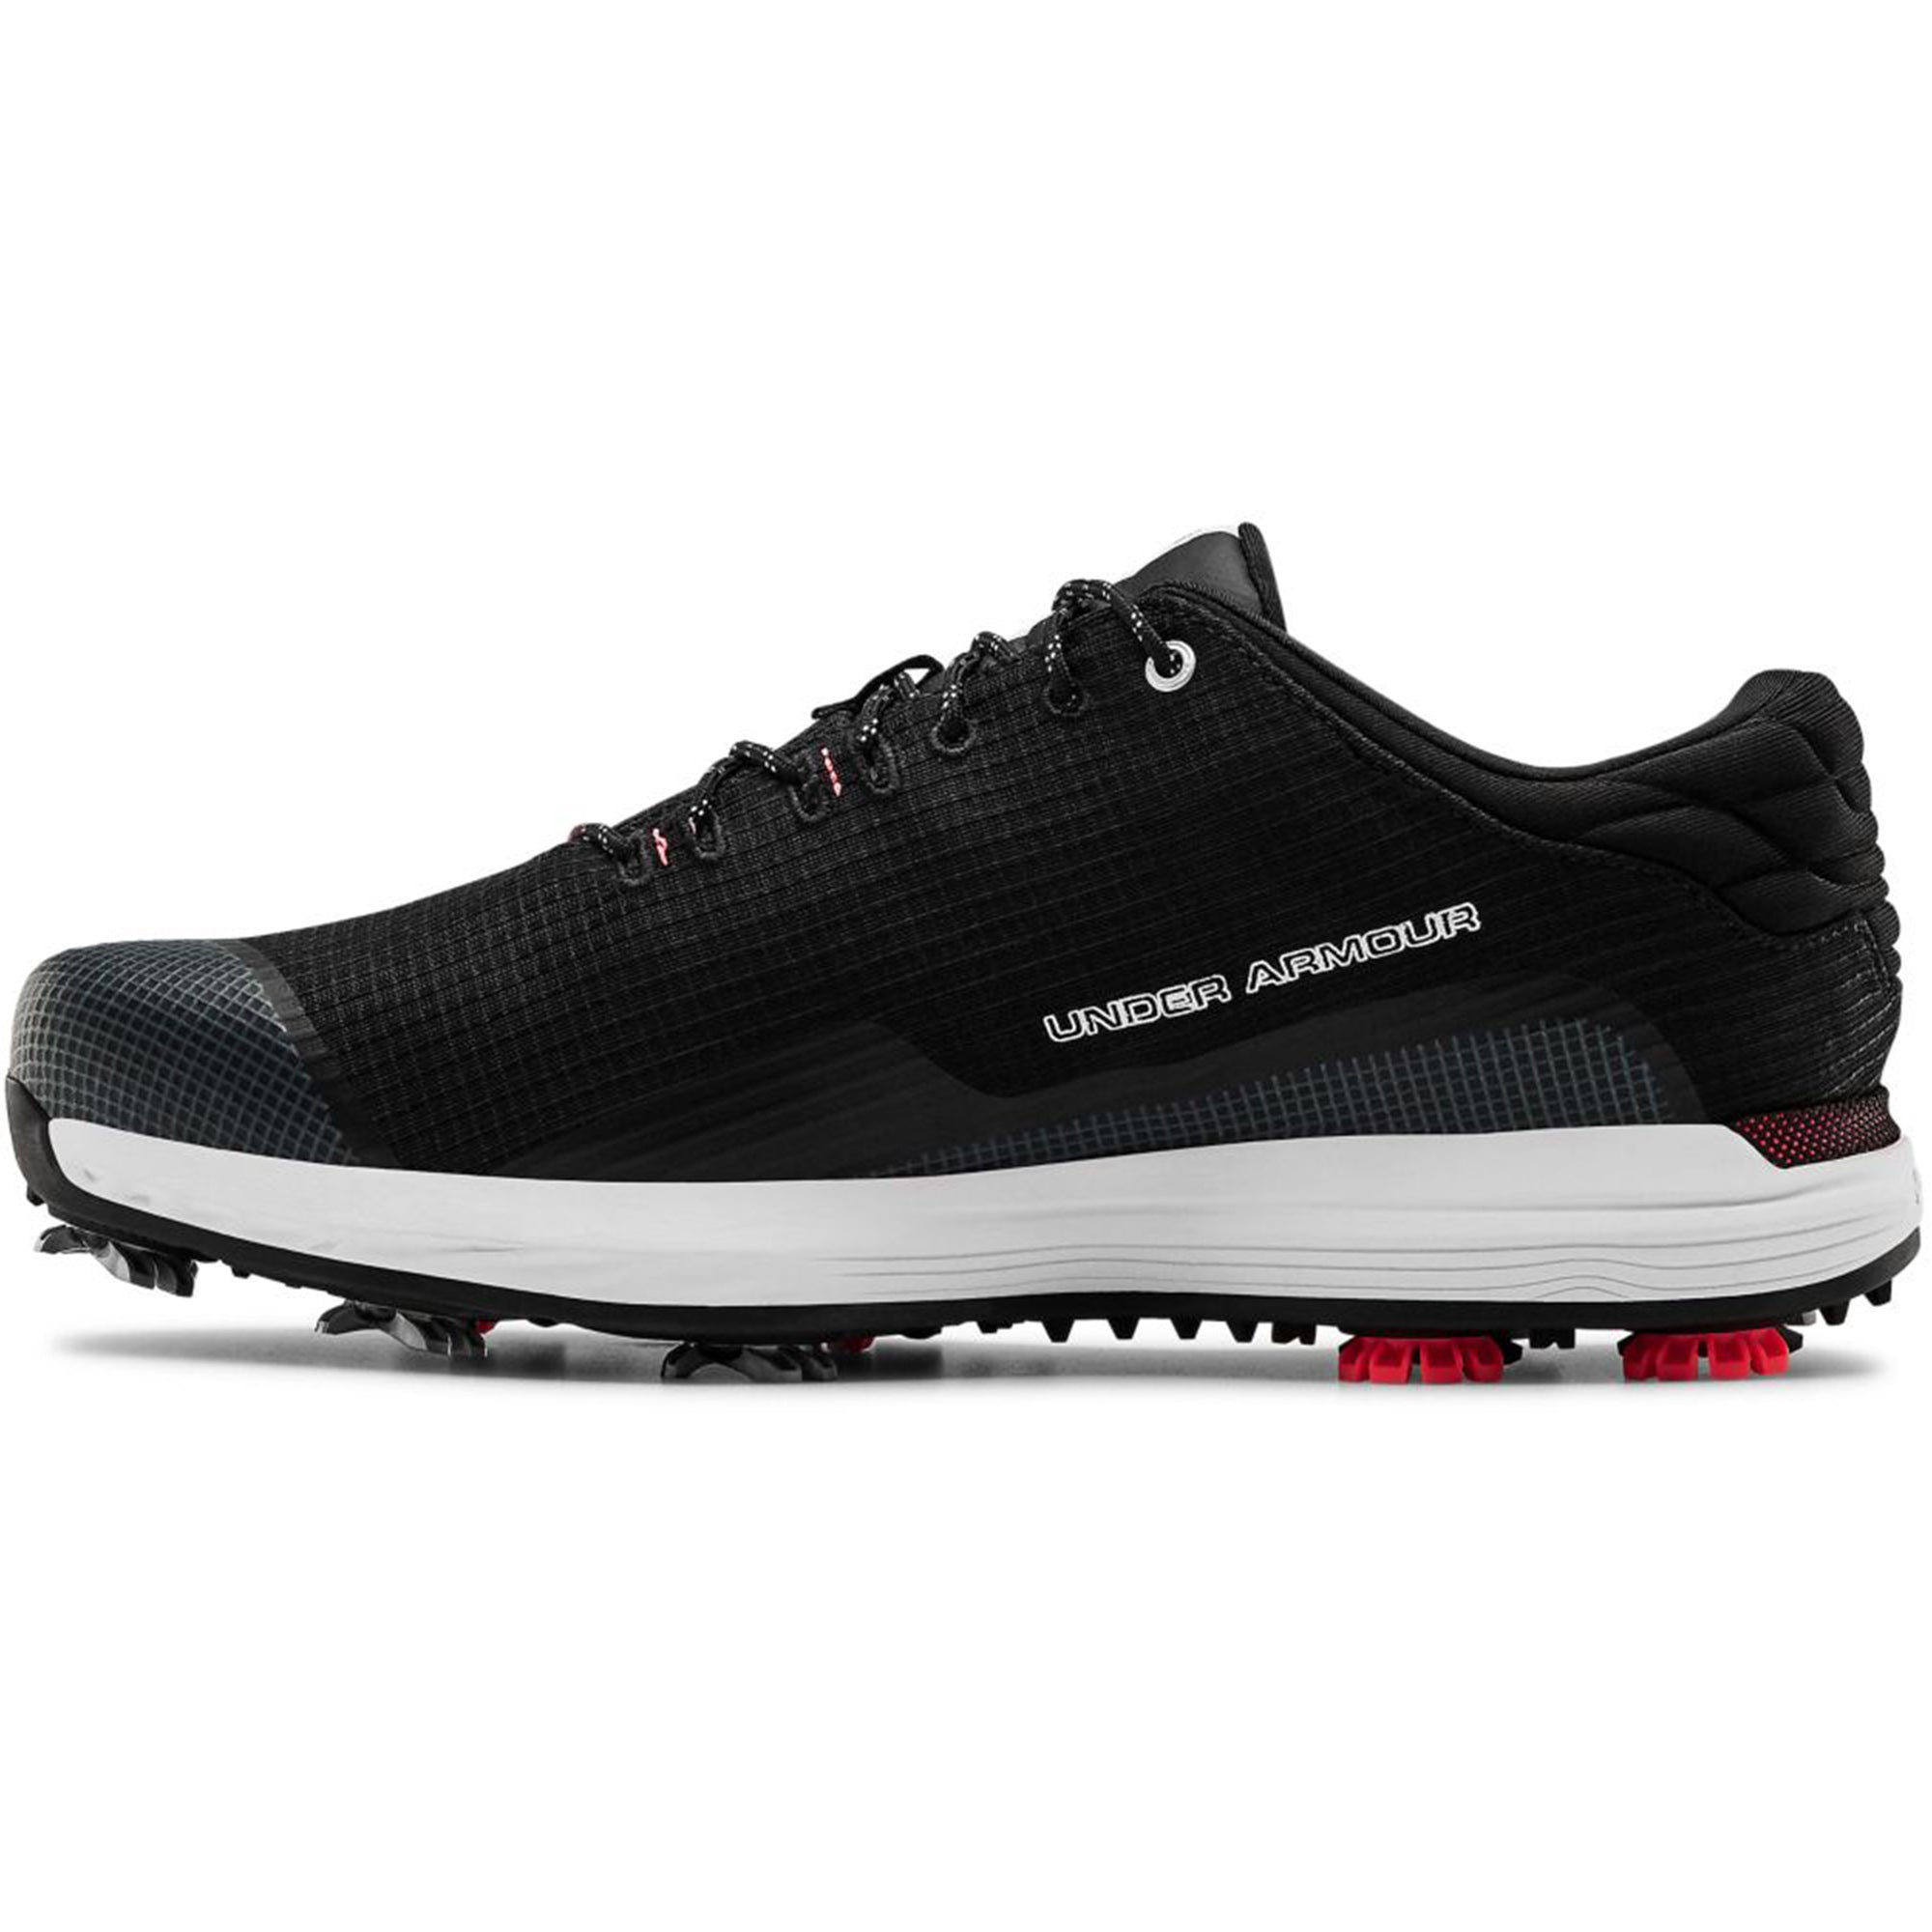 Under Armour HOVR Matchplay TE Golf Shoes 3023246 Black ...